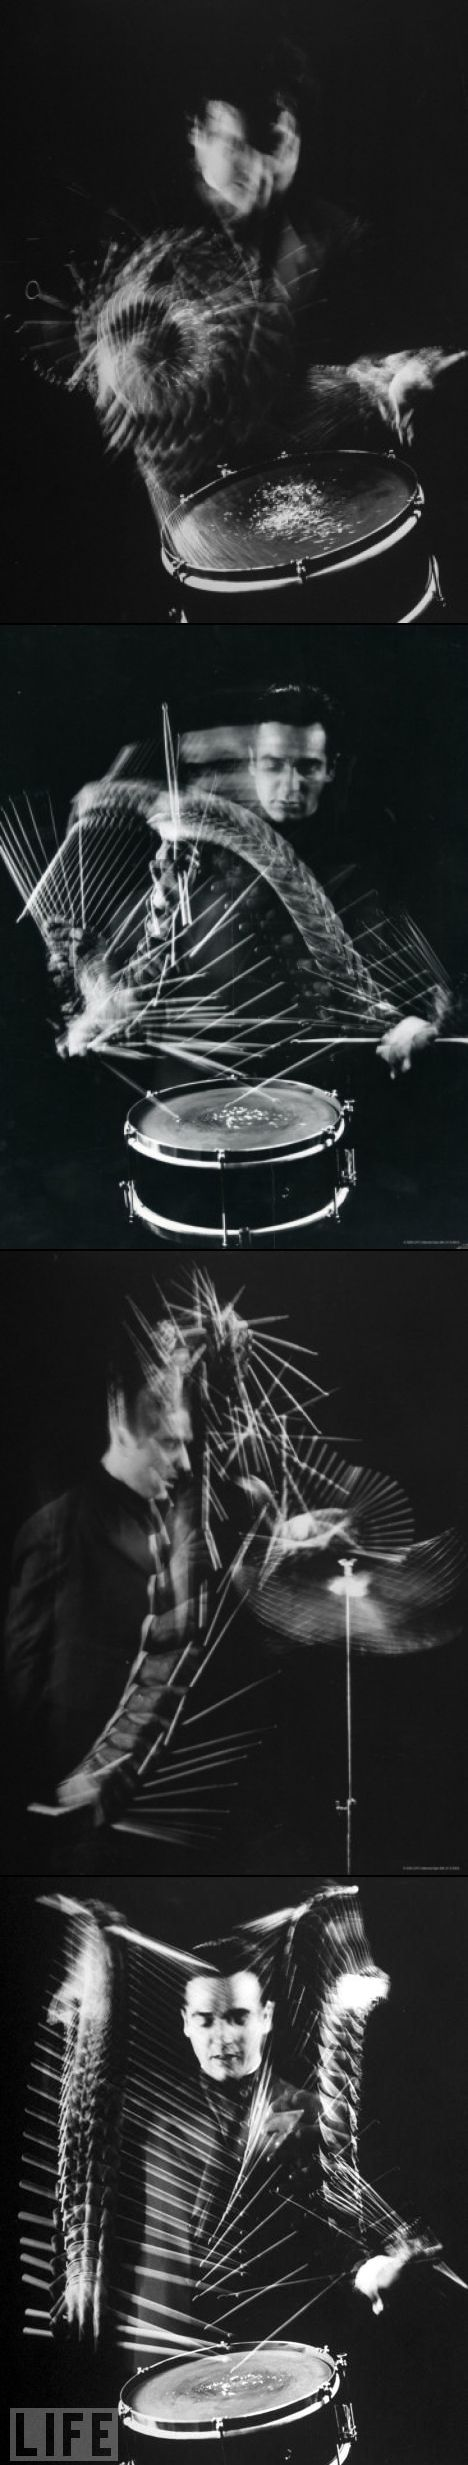 Drummer Gene Krupa by Gjon Mili| I will find out how to do this! Long exposure taken through a black fan maybe?